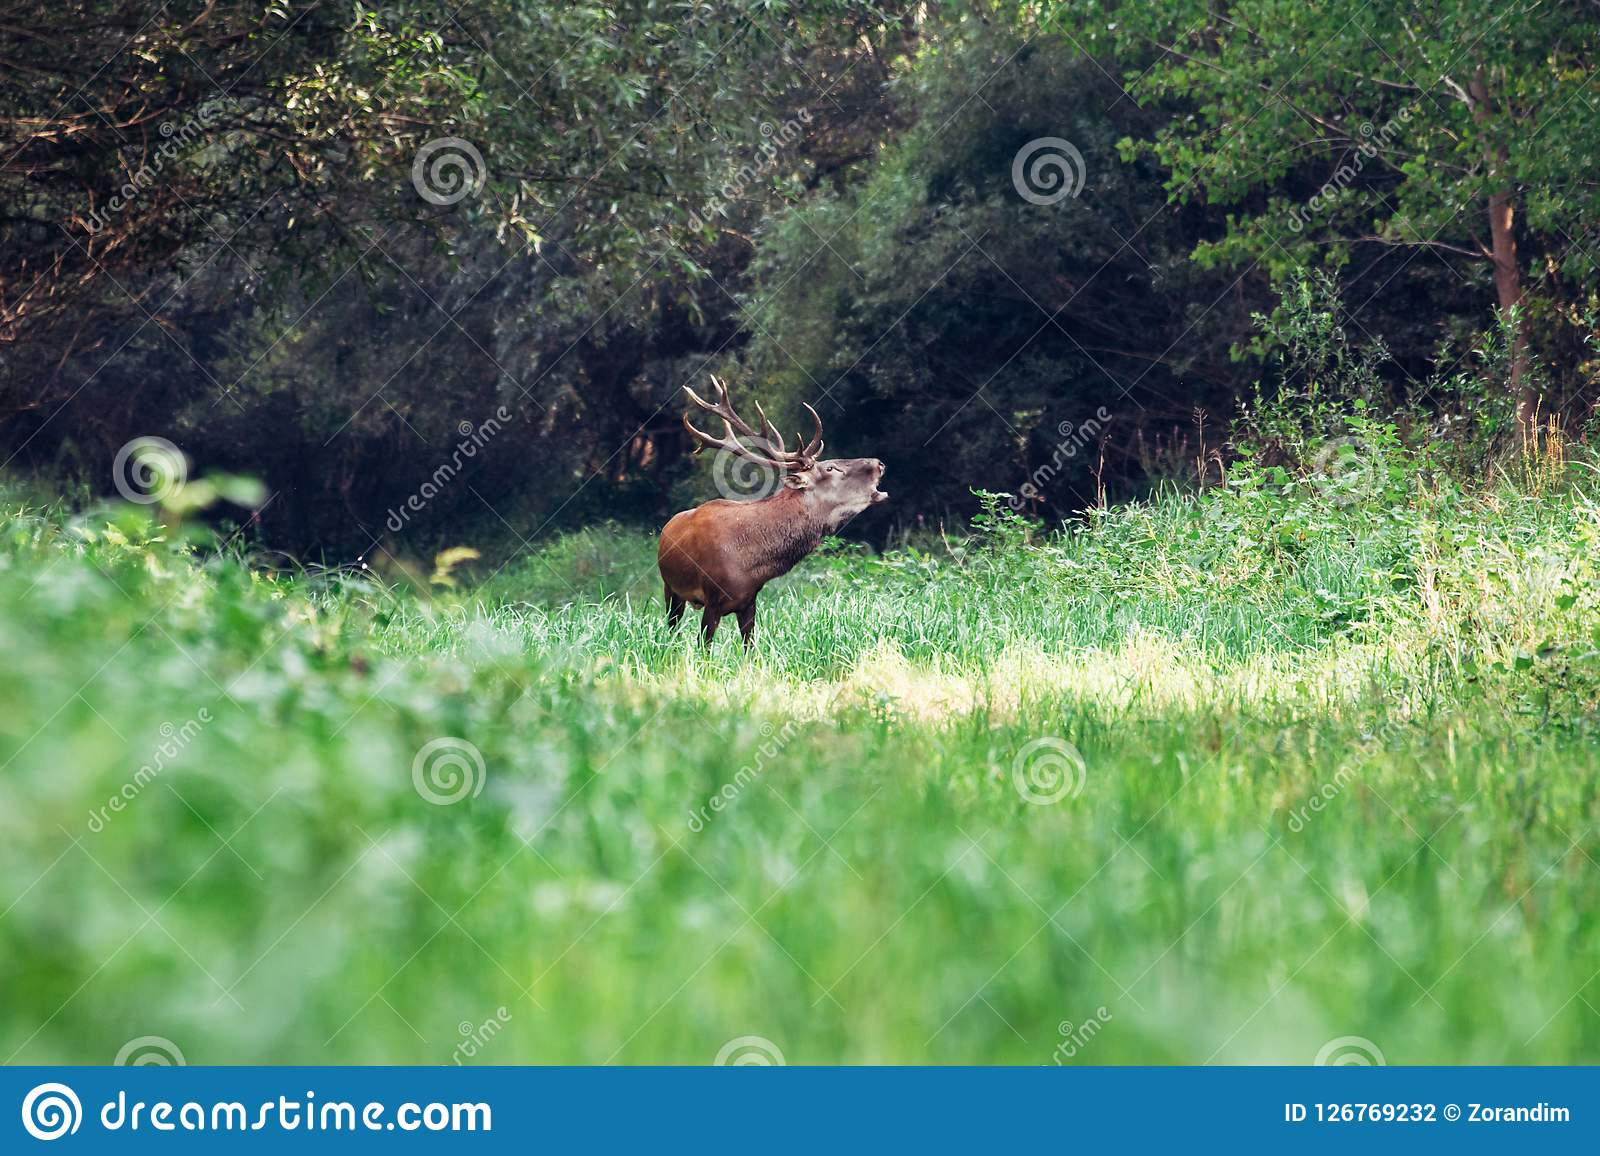 Roaring of majestic powerful adult red deer stag in green forest